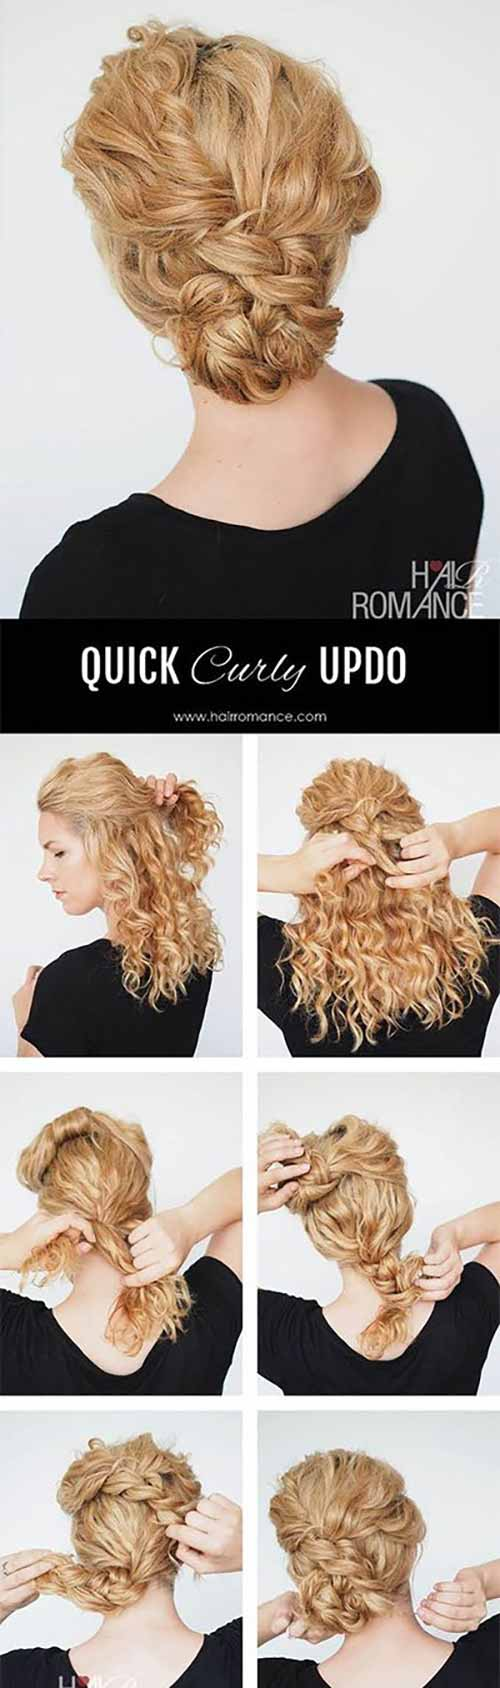 Fast Easy Updos For Long Hair Photo 1